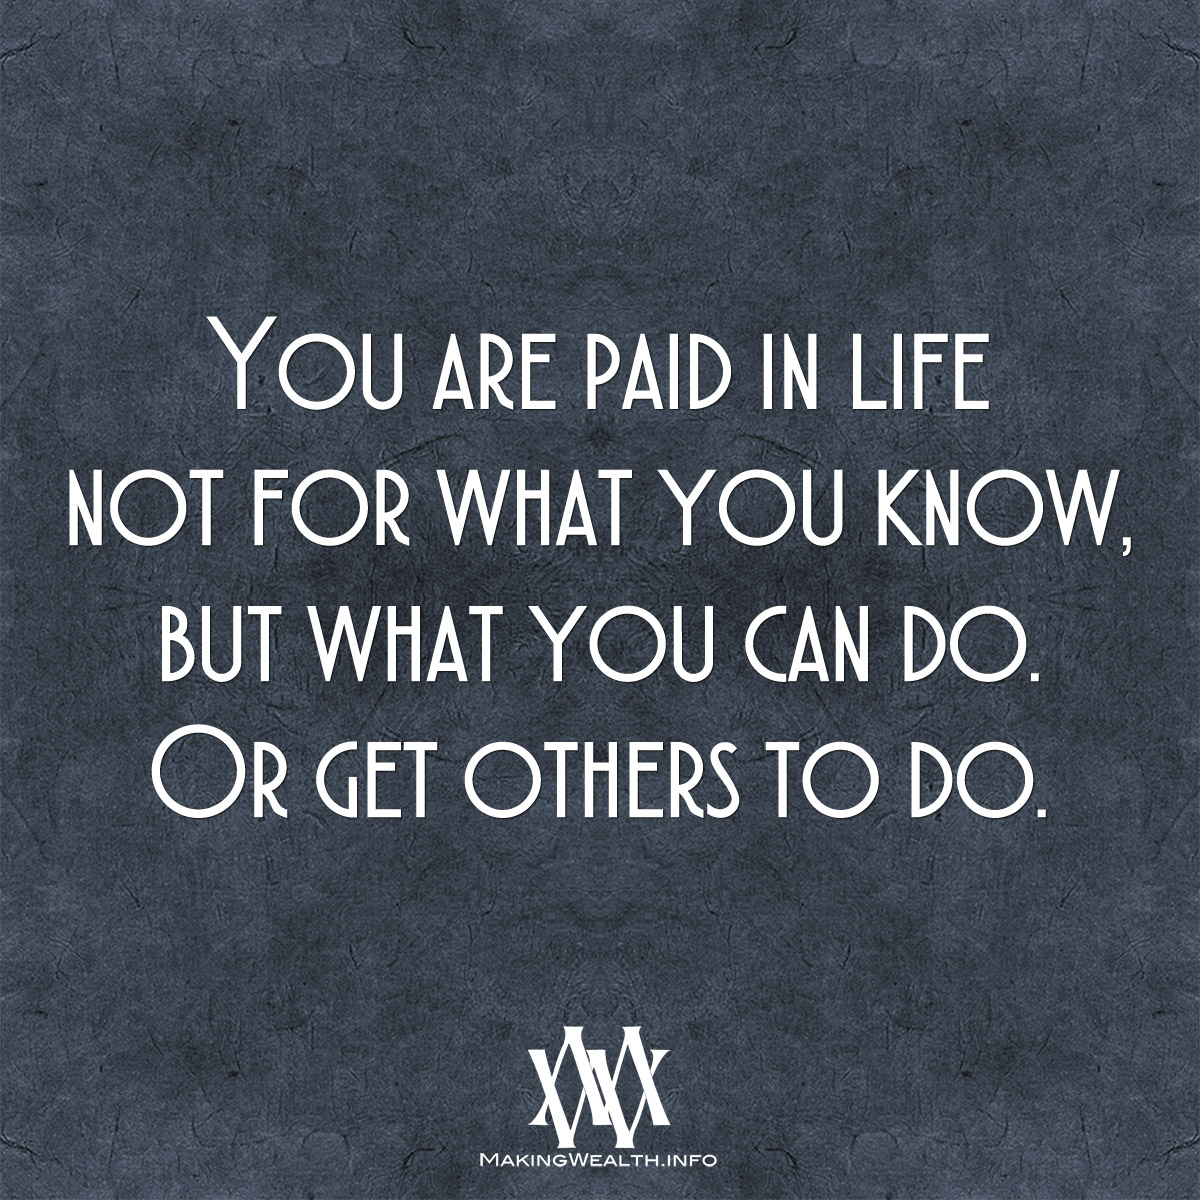 You Are Paid In Life Not For What You Know